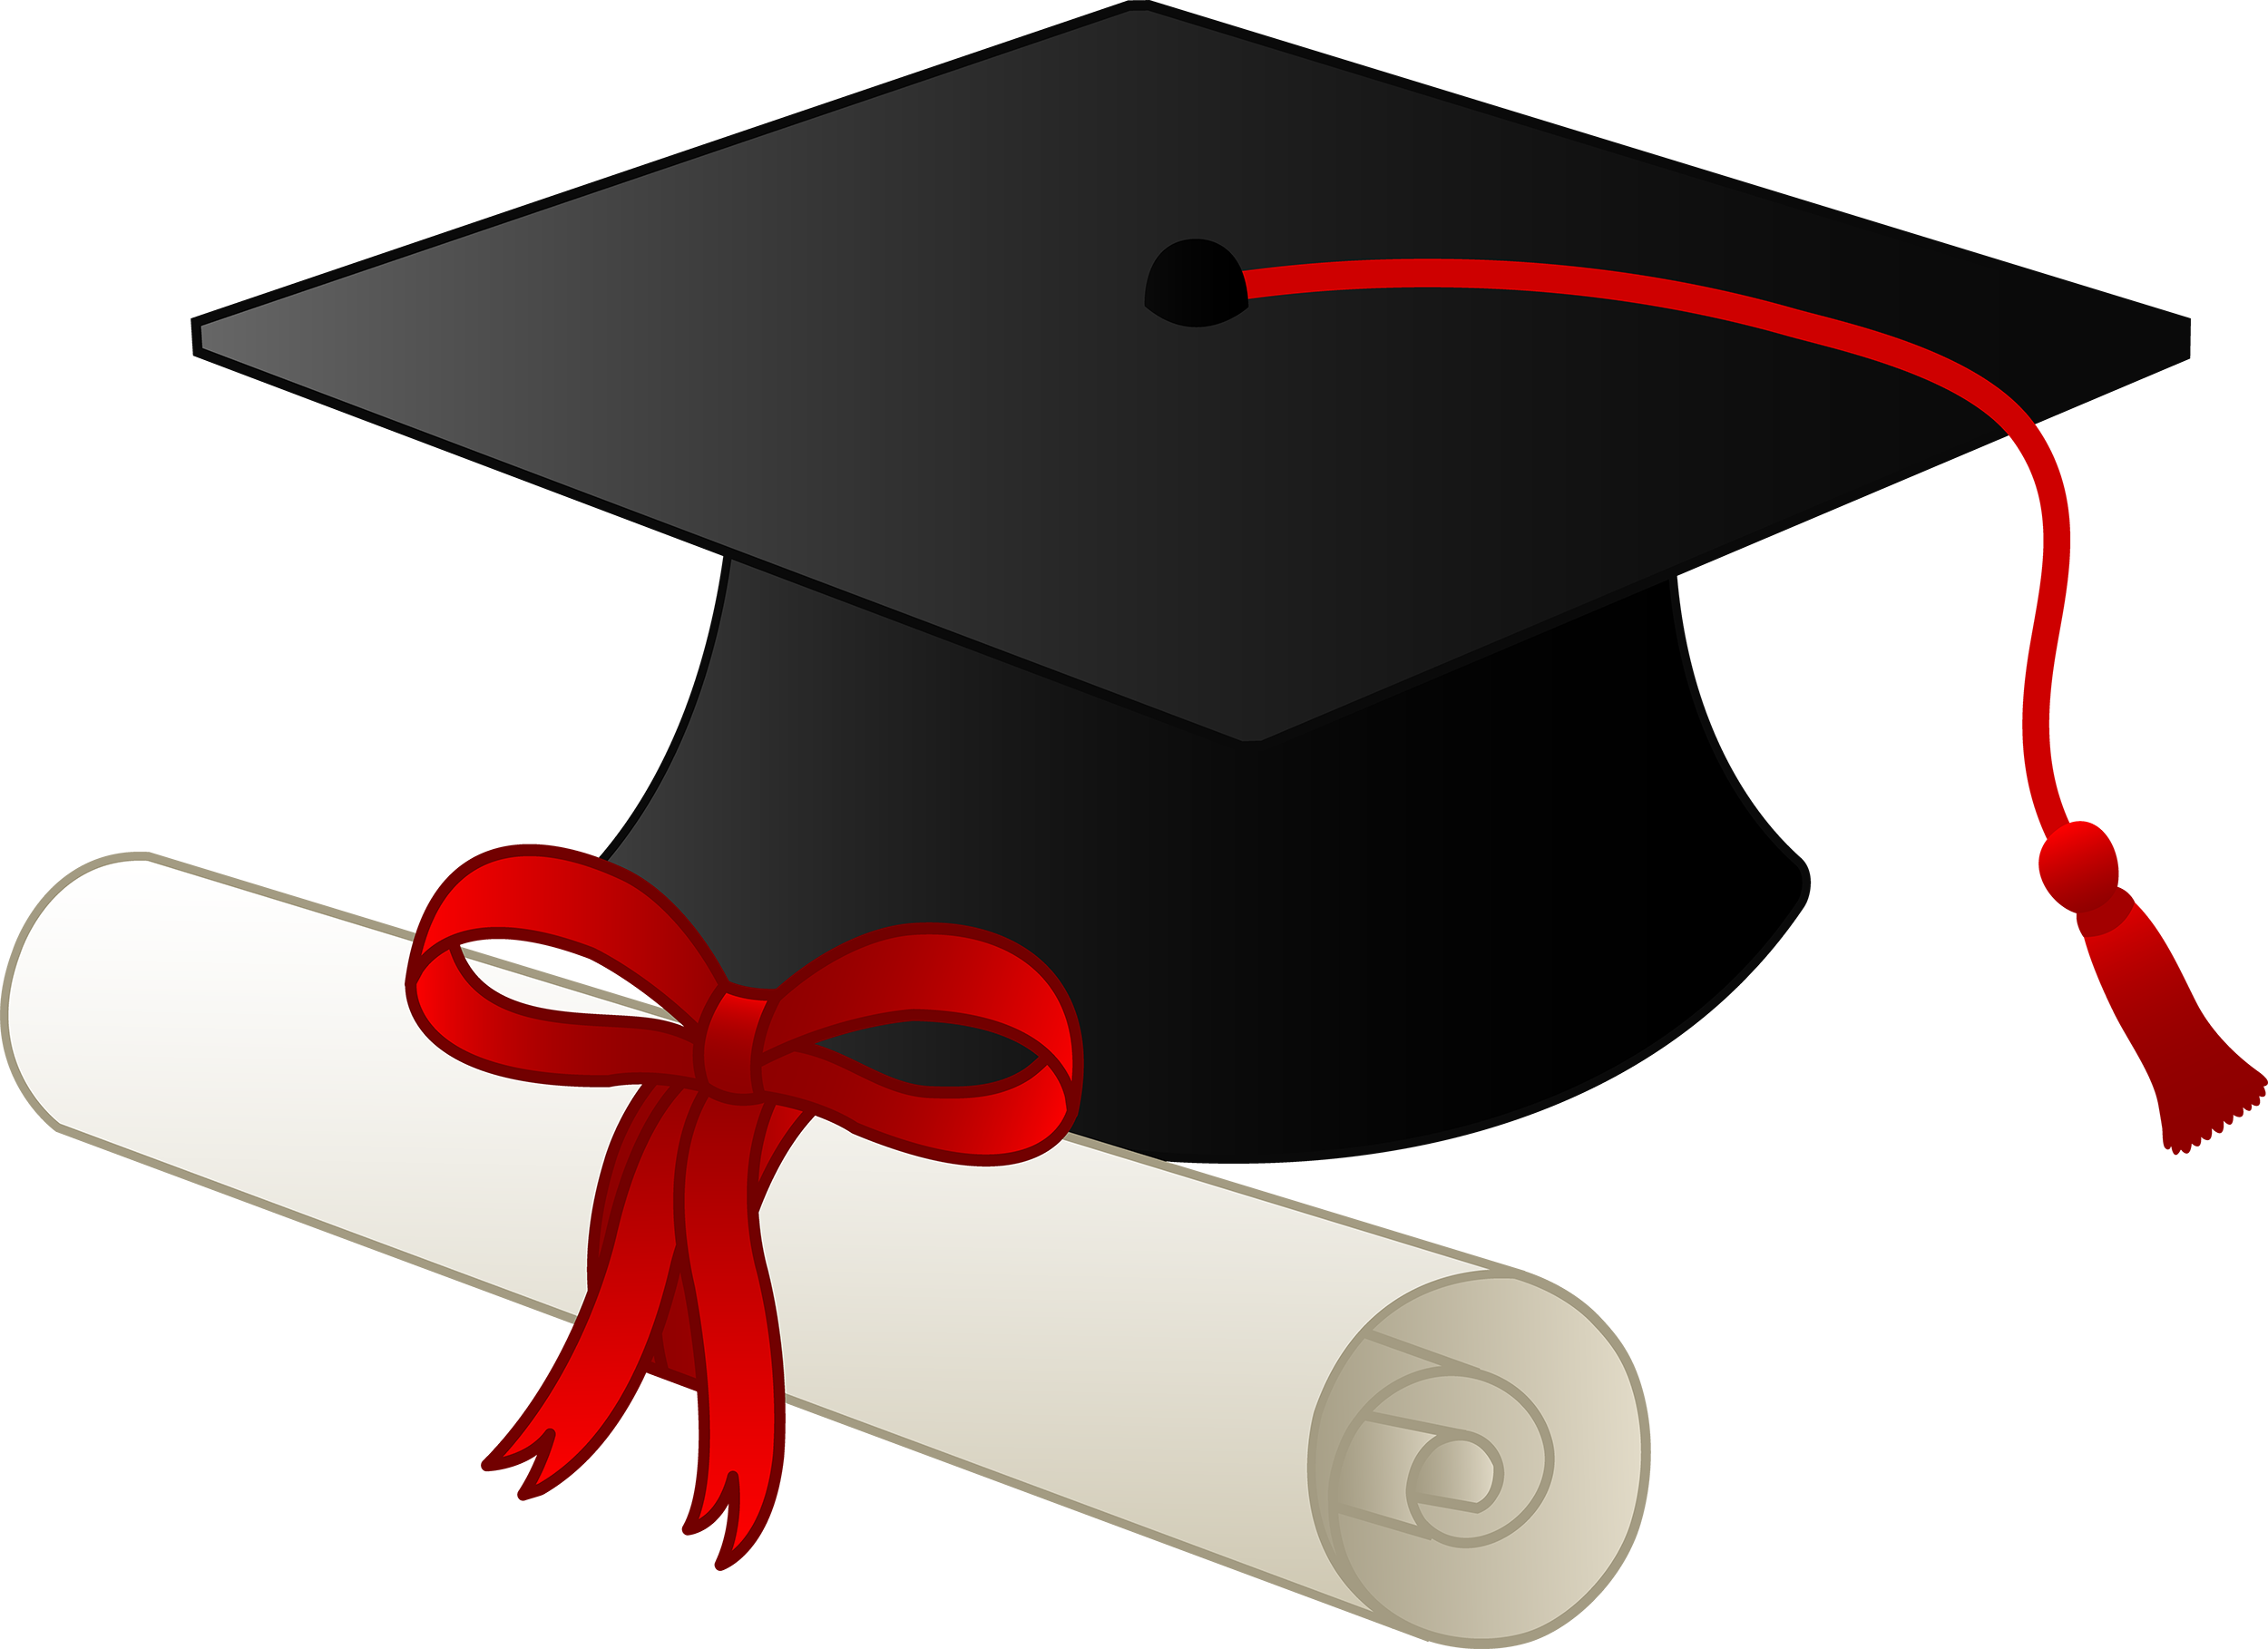 Ceremony academic degree free. Preschool clipart graduation